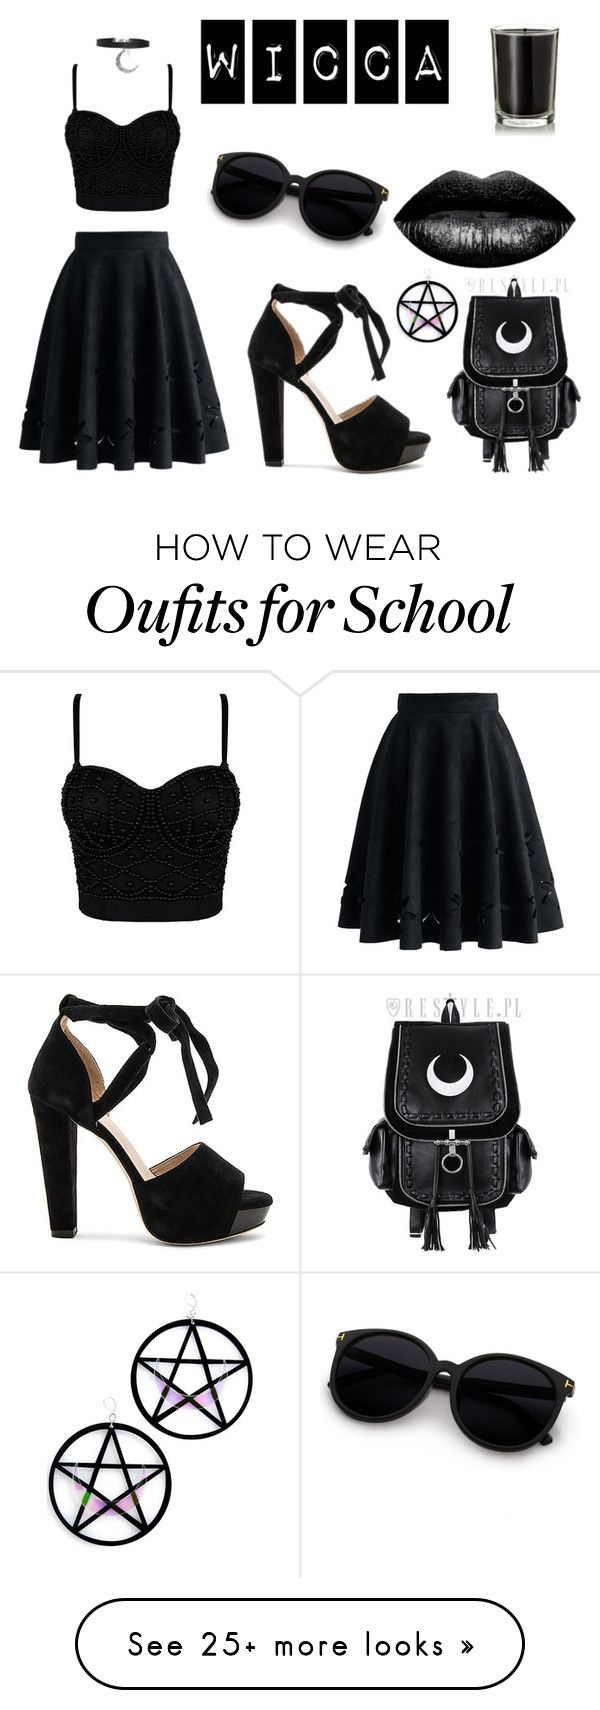 """Wicca"" by fireflypiano on Polyvore featuring Chicwish, Raye, The Lip Bar, Coqui Coqui, Boohoo and Marina Fini"